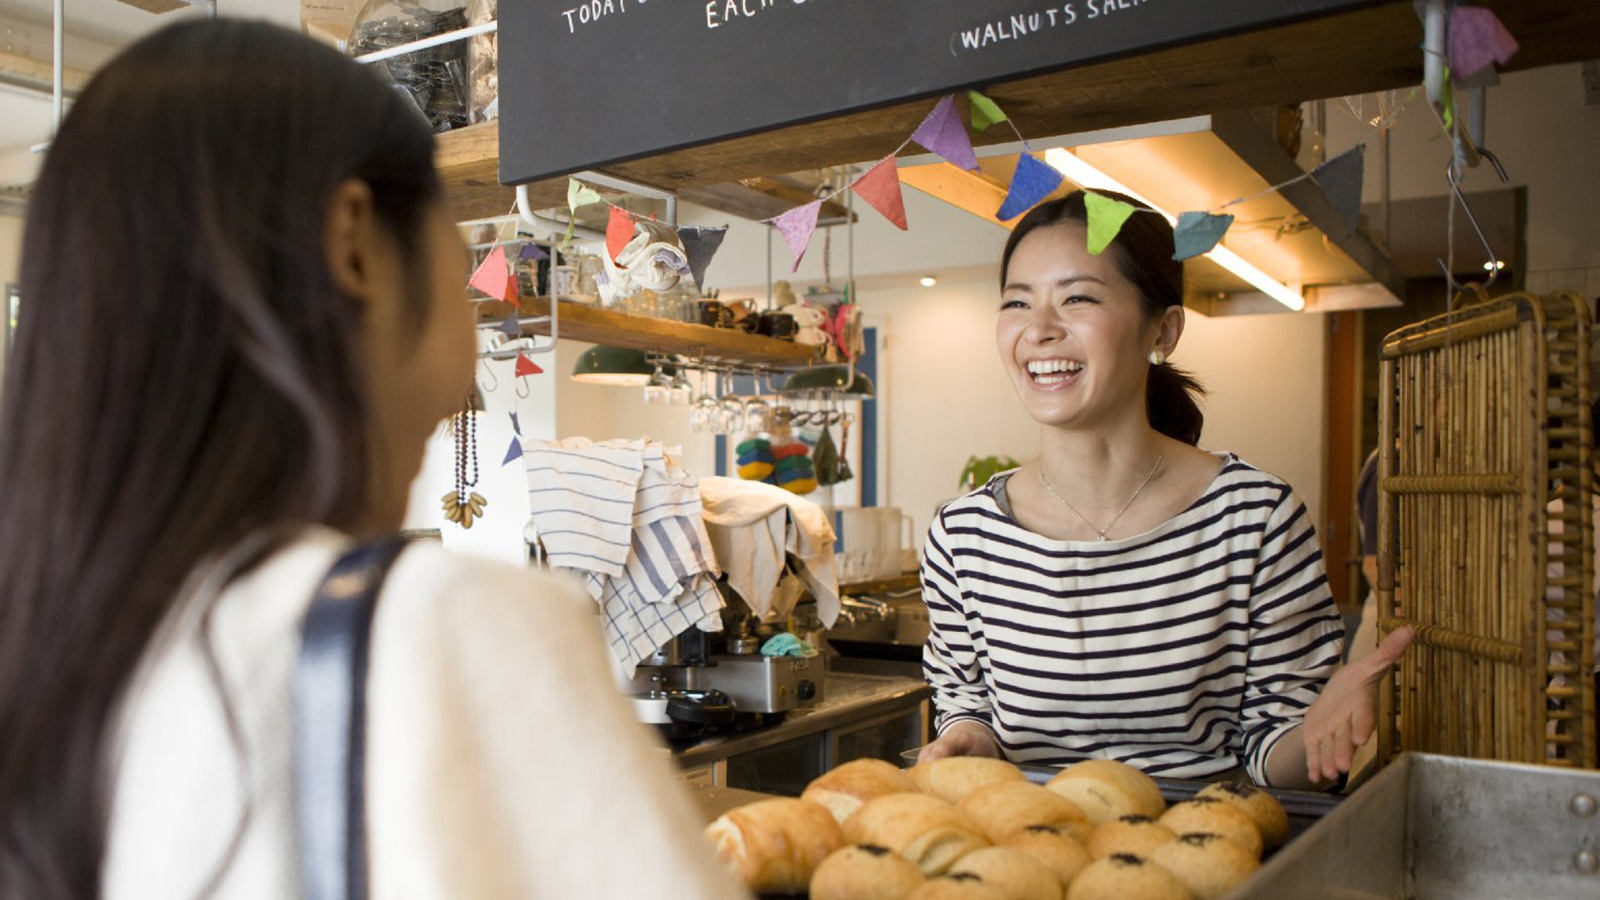 Women talking and laughing at bakery counter.